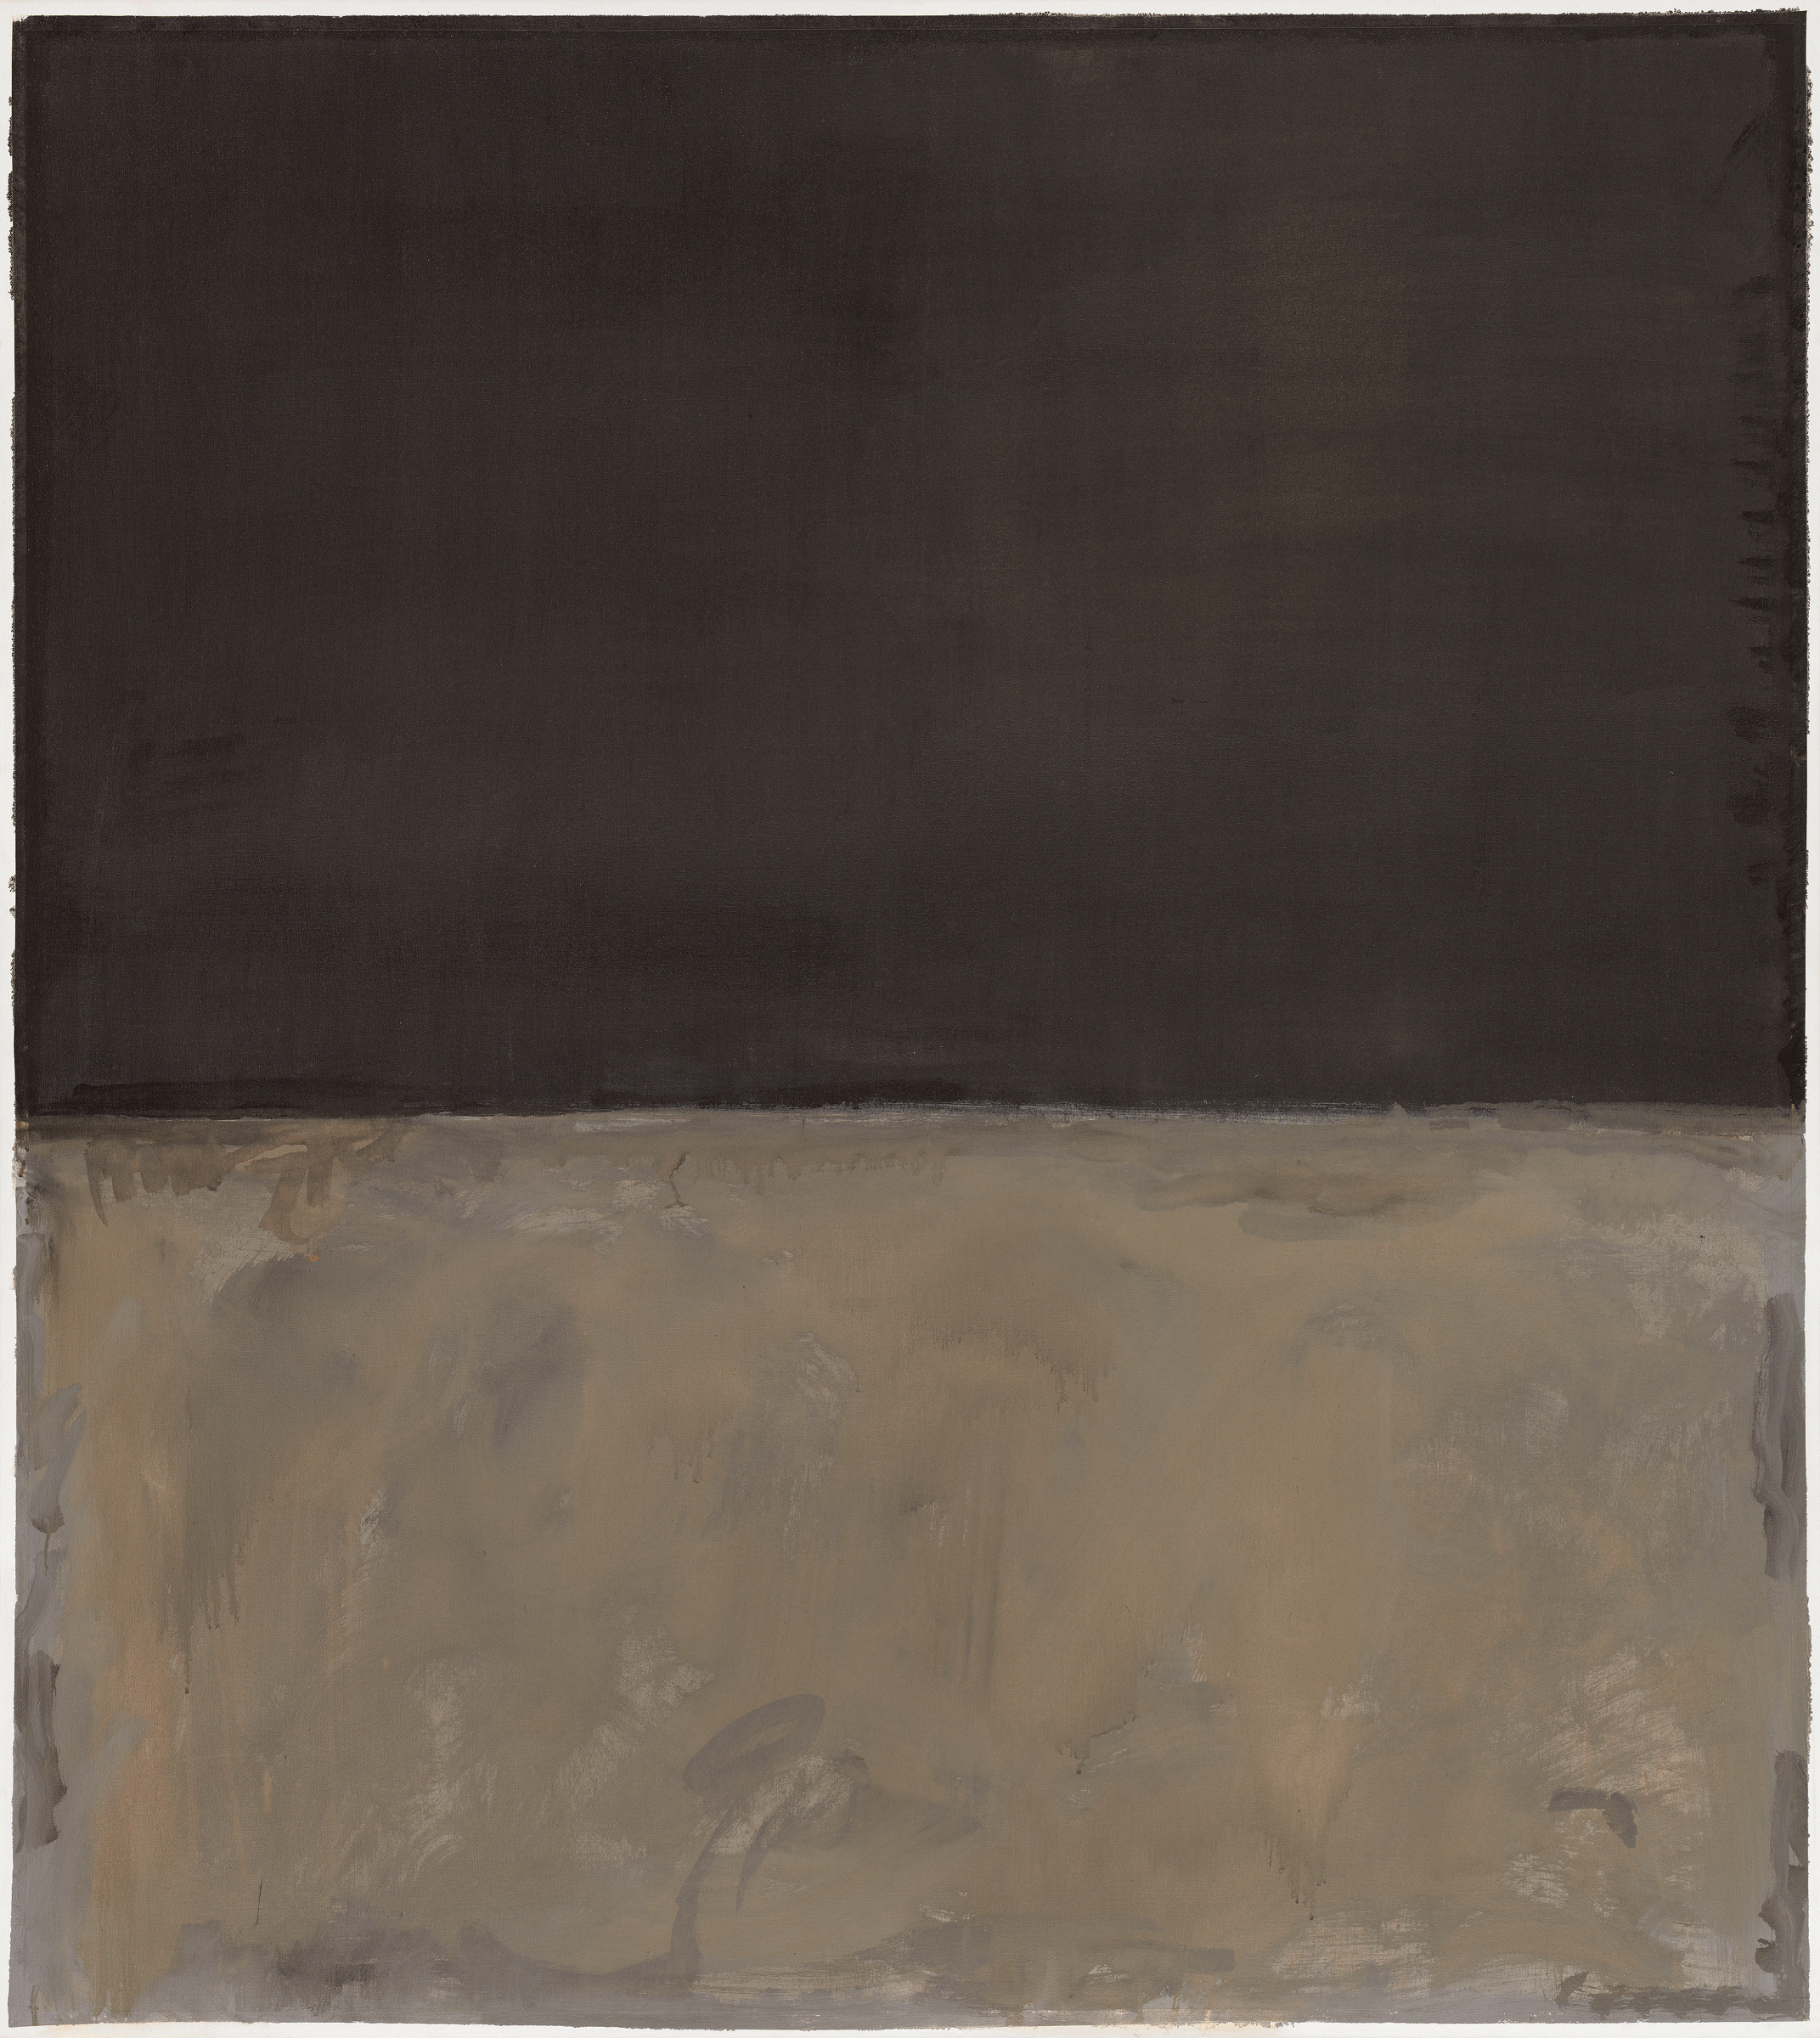 Mark Rothko, Untitled, 1969, acrylic on canvas, National Gallery of Art, Washington, Gift of The Mark Rothko Foundation, Inc. © 1998 by Kate Rothko Prizel and Christopher Rothko, courtesy Museum of Fine Arts Houston